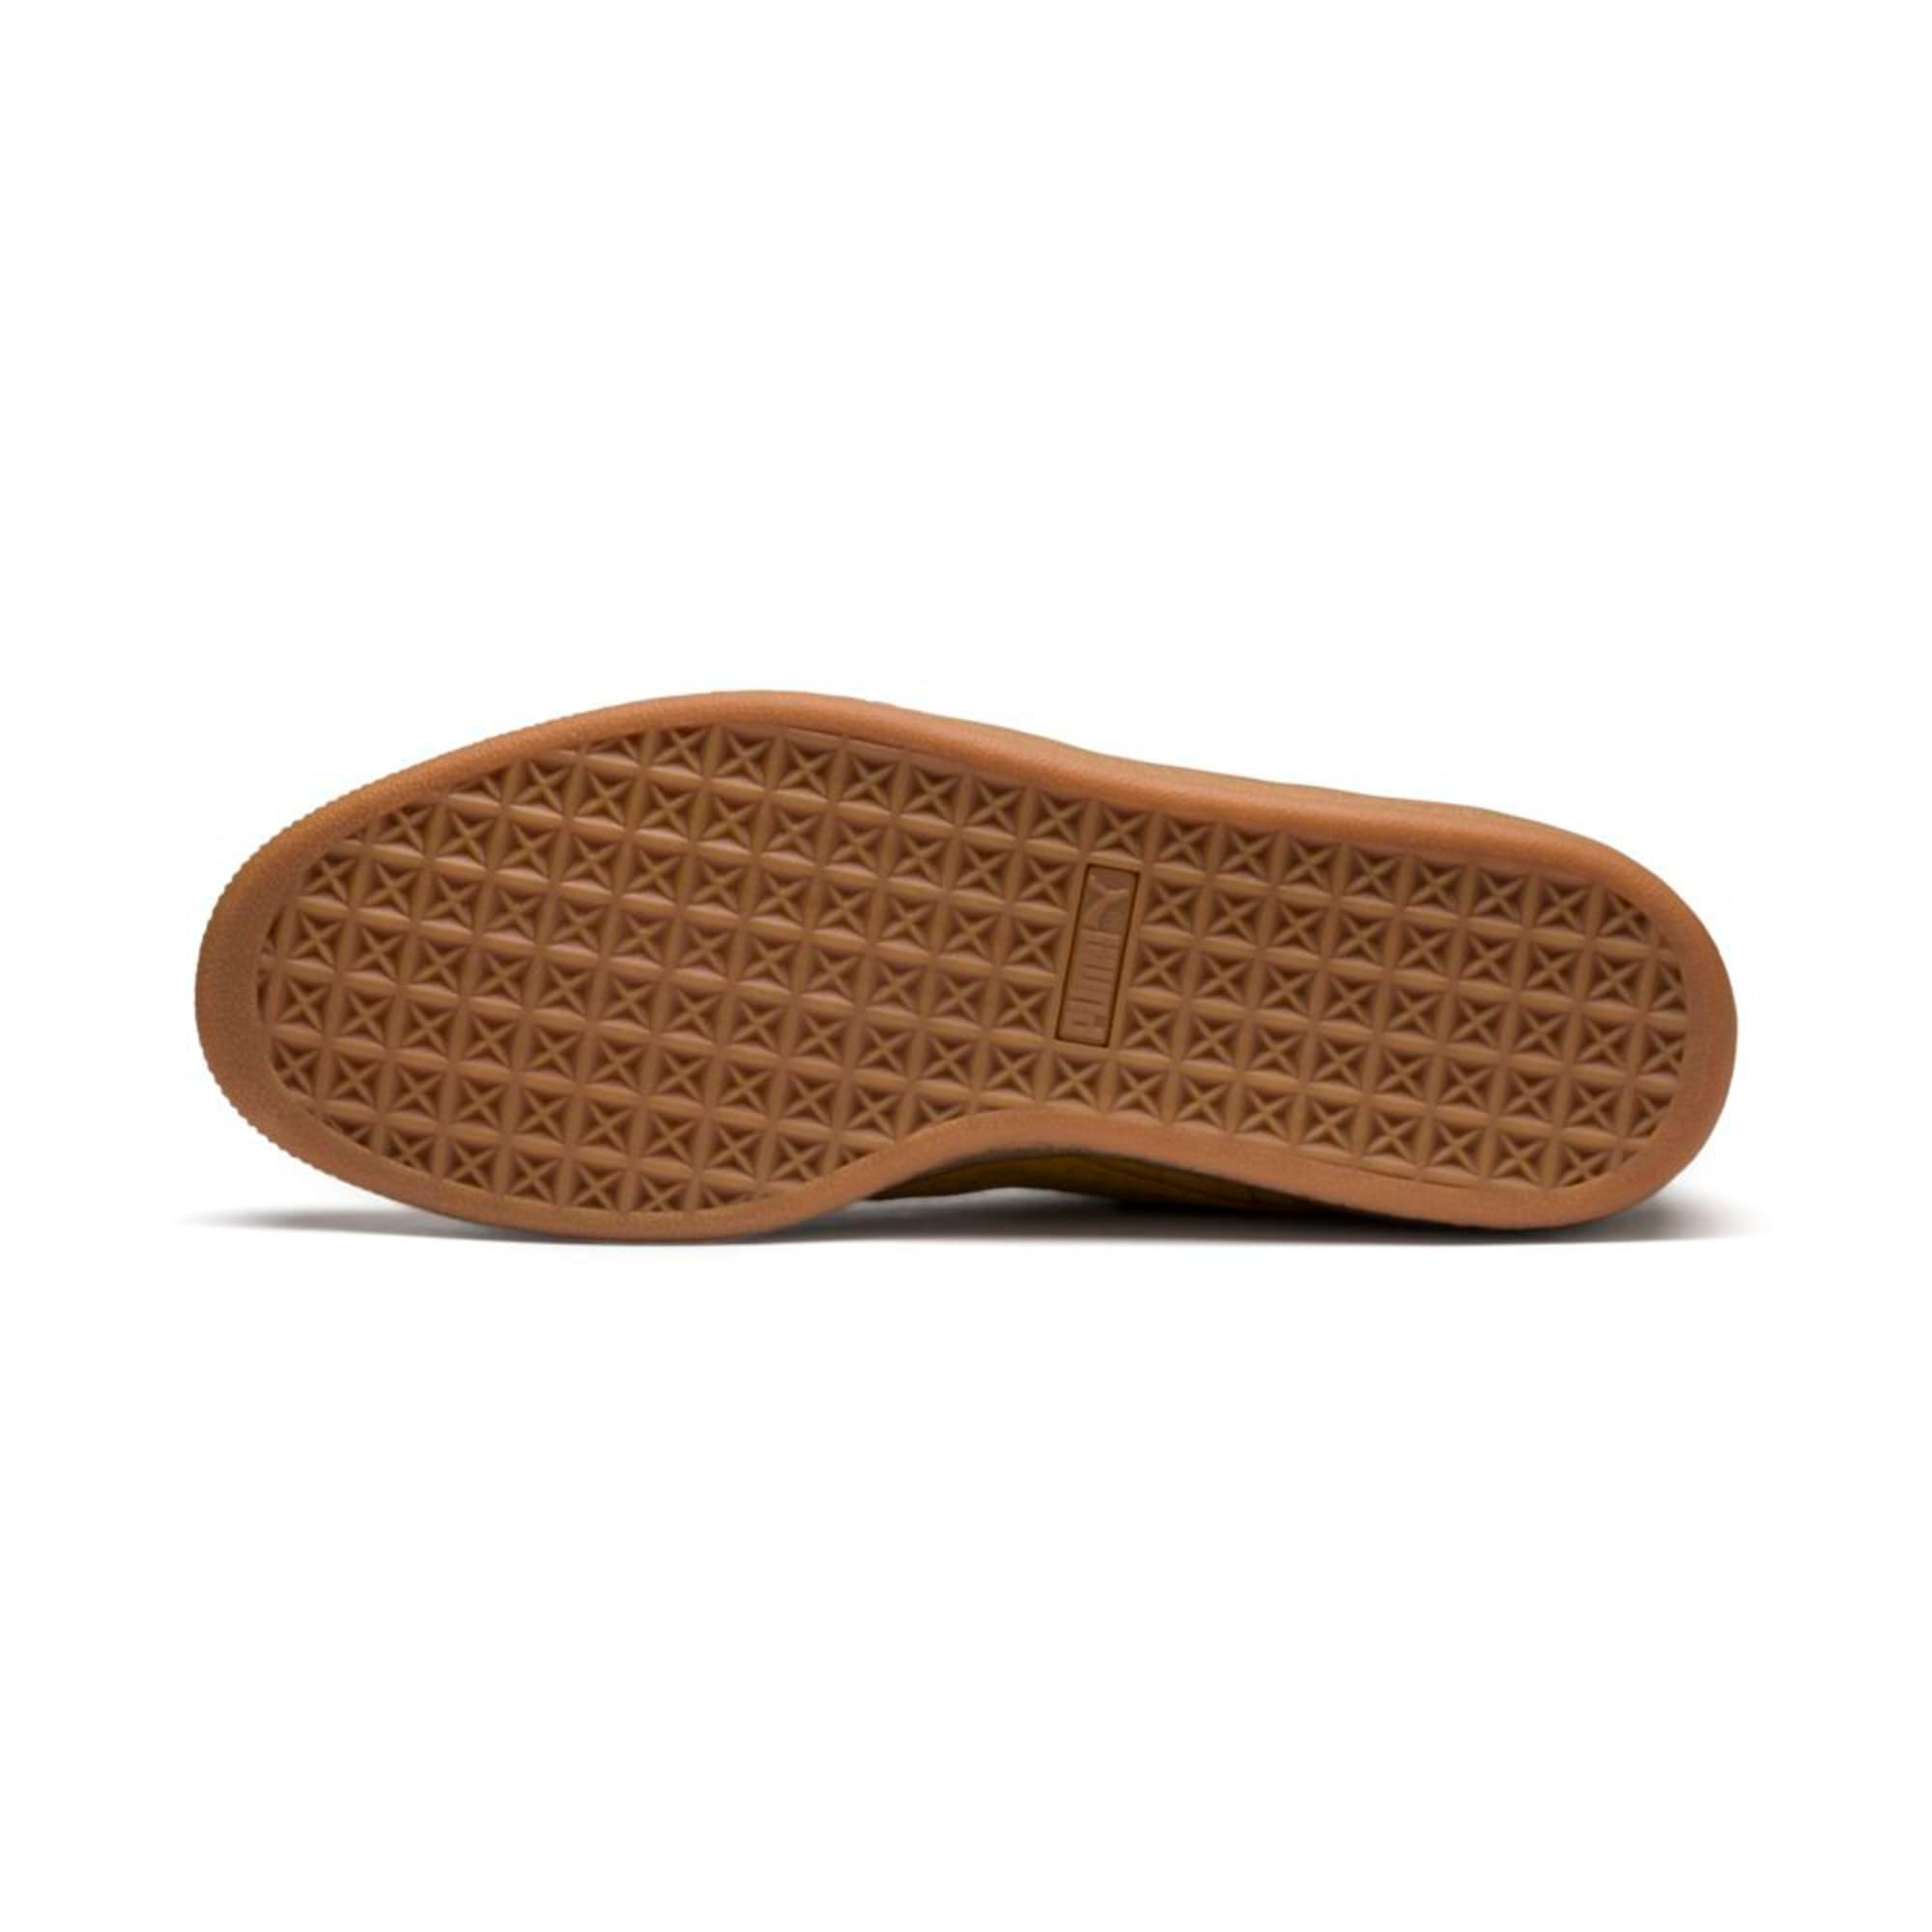 Thumbnail 2 of Suede Classic Pincord Trainers, Buckthorn Brwn-Buckthorn Brw, medium-IND